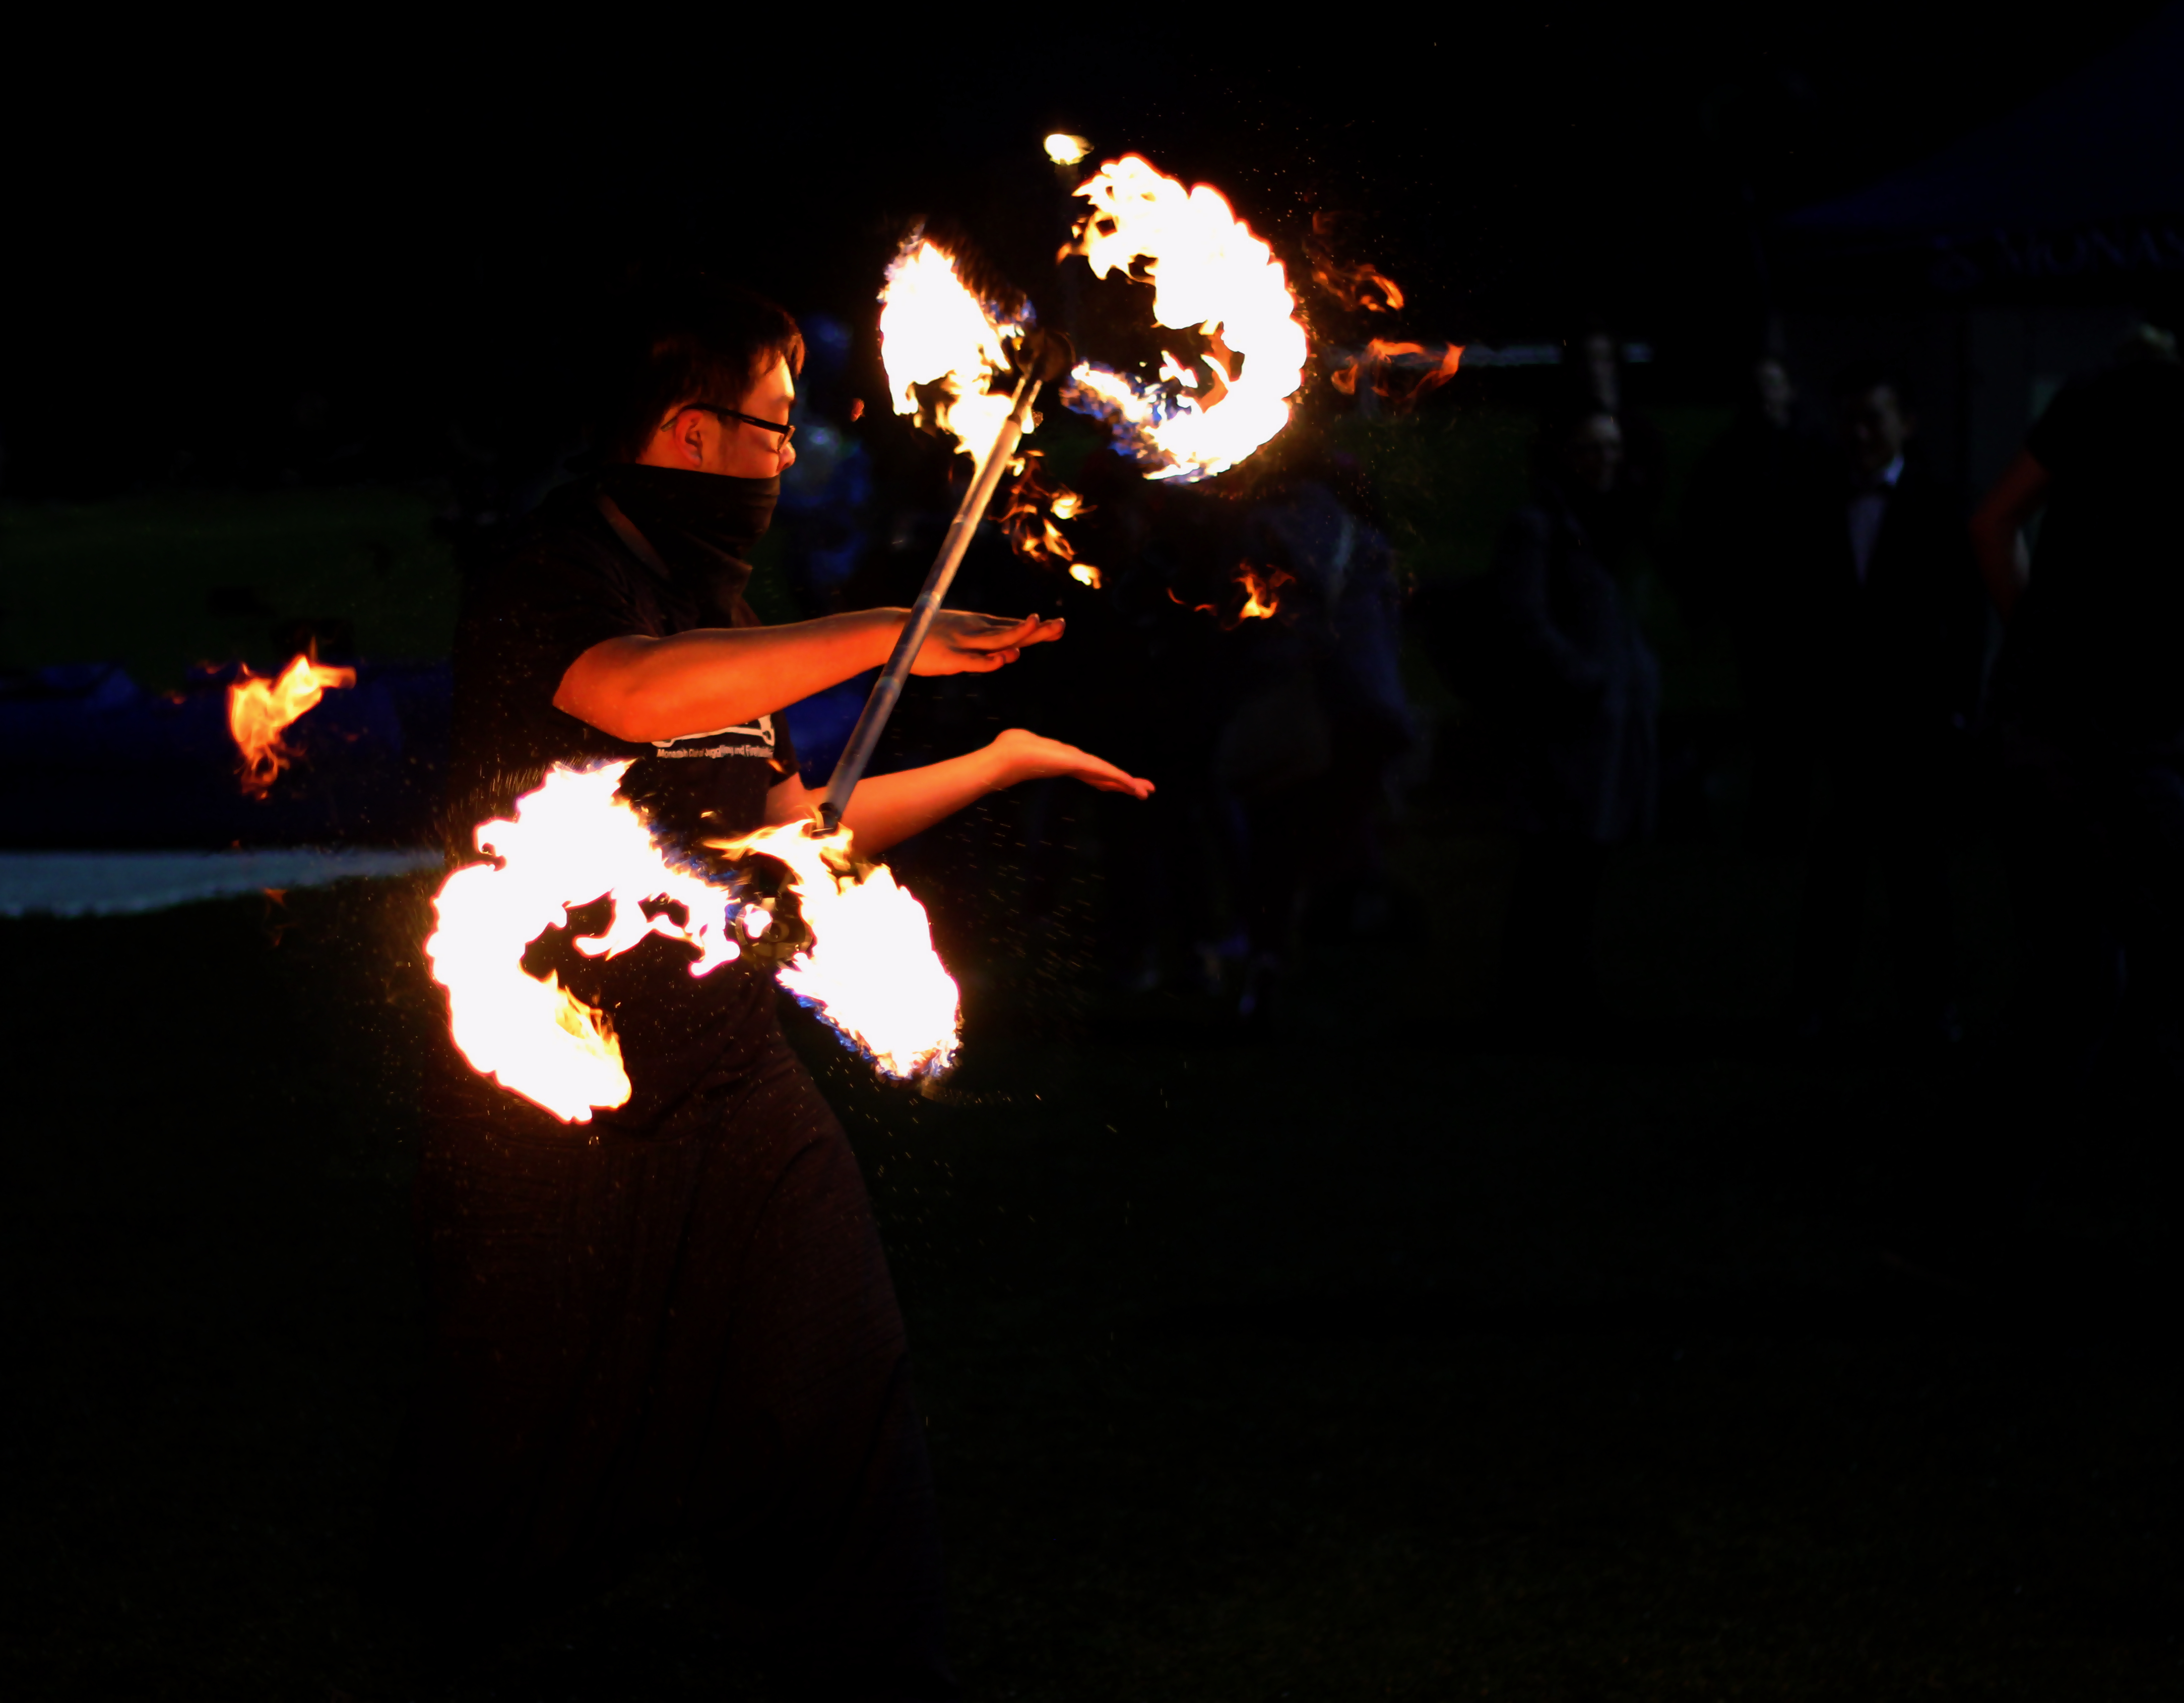 Monash Club of Juggling and Fire Twirling shows off his talents